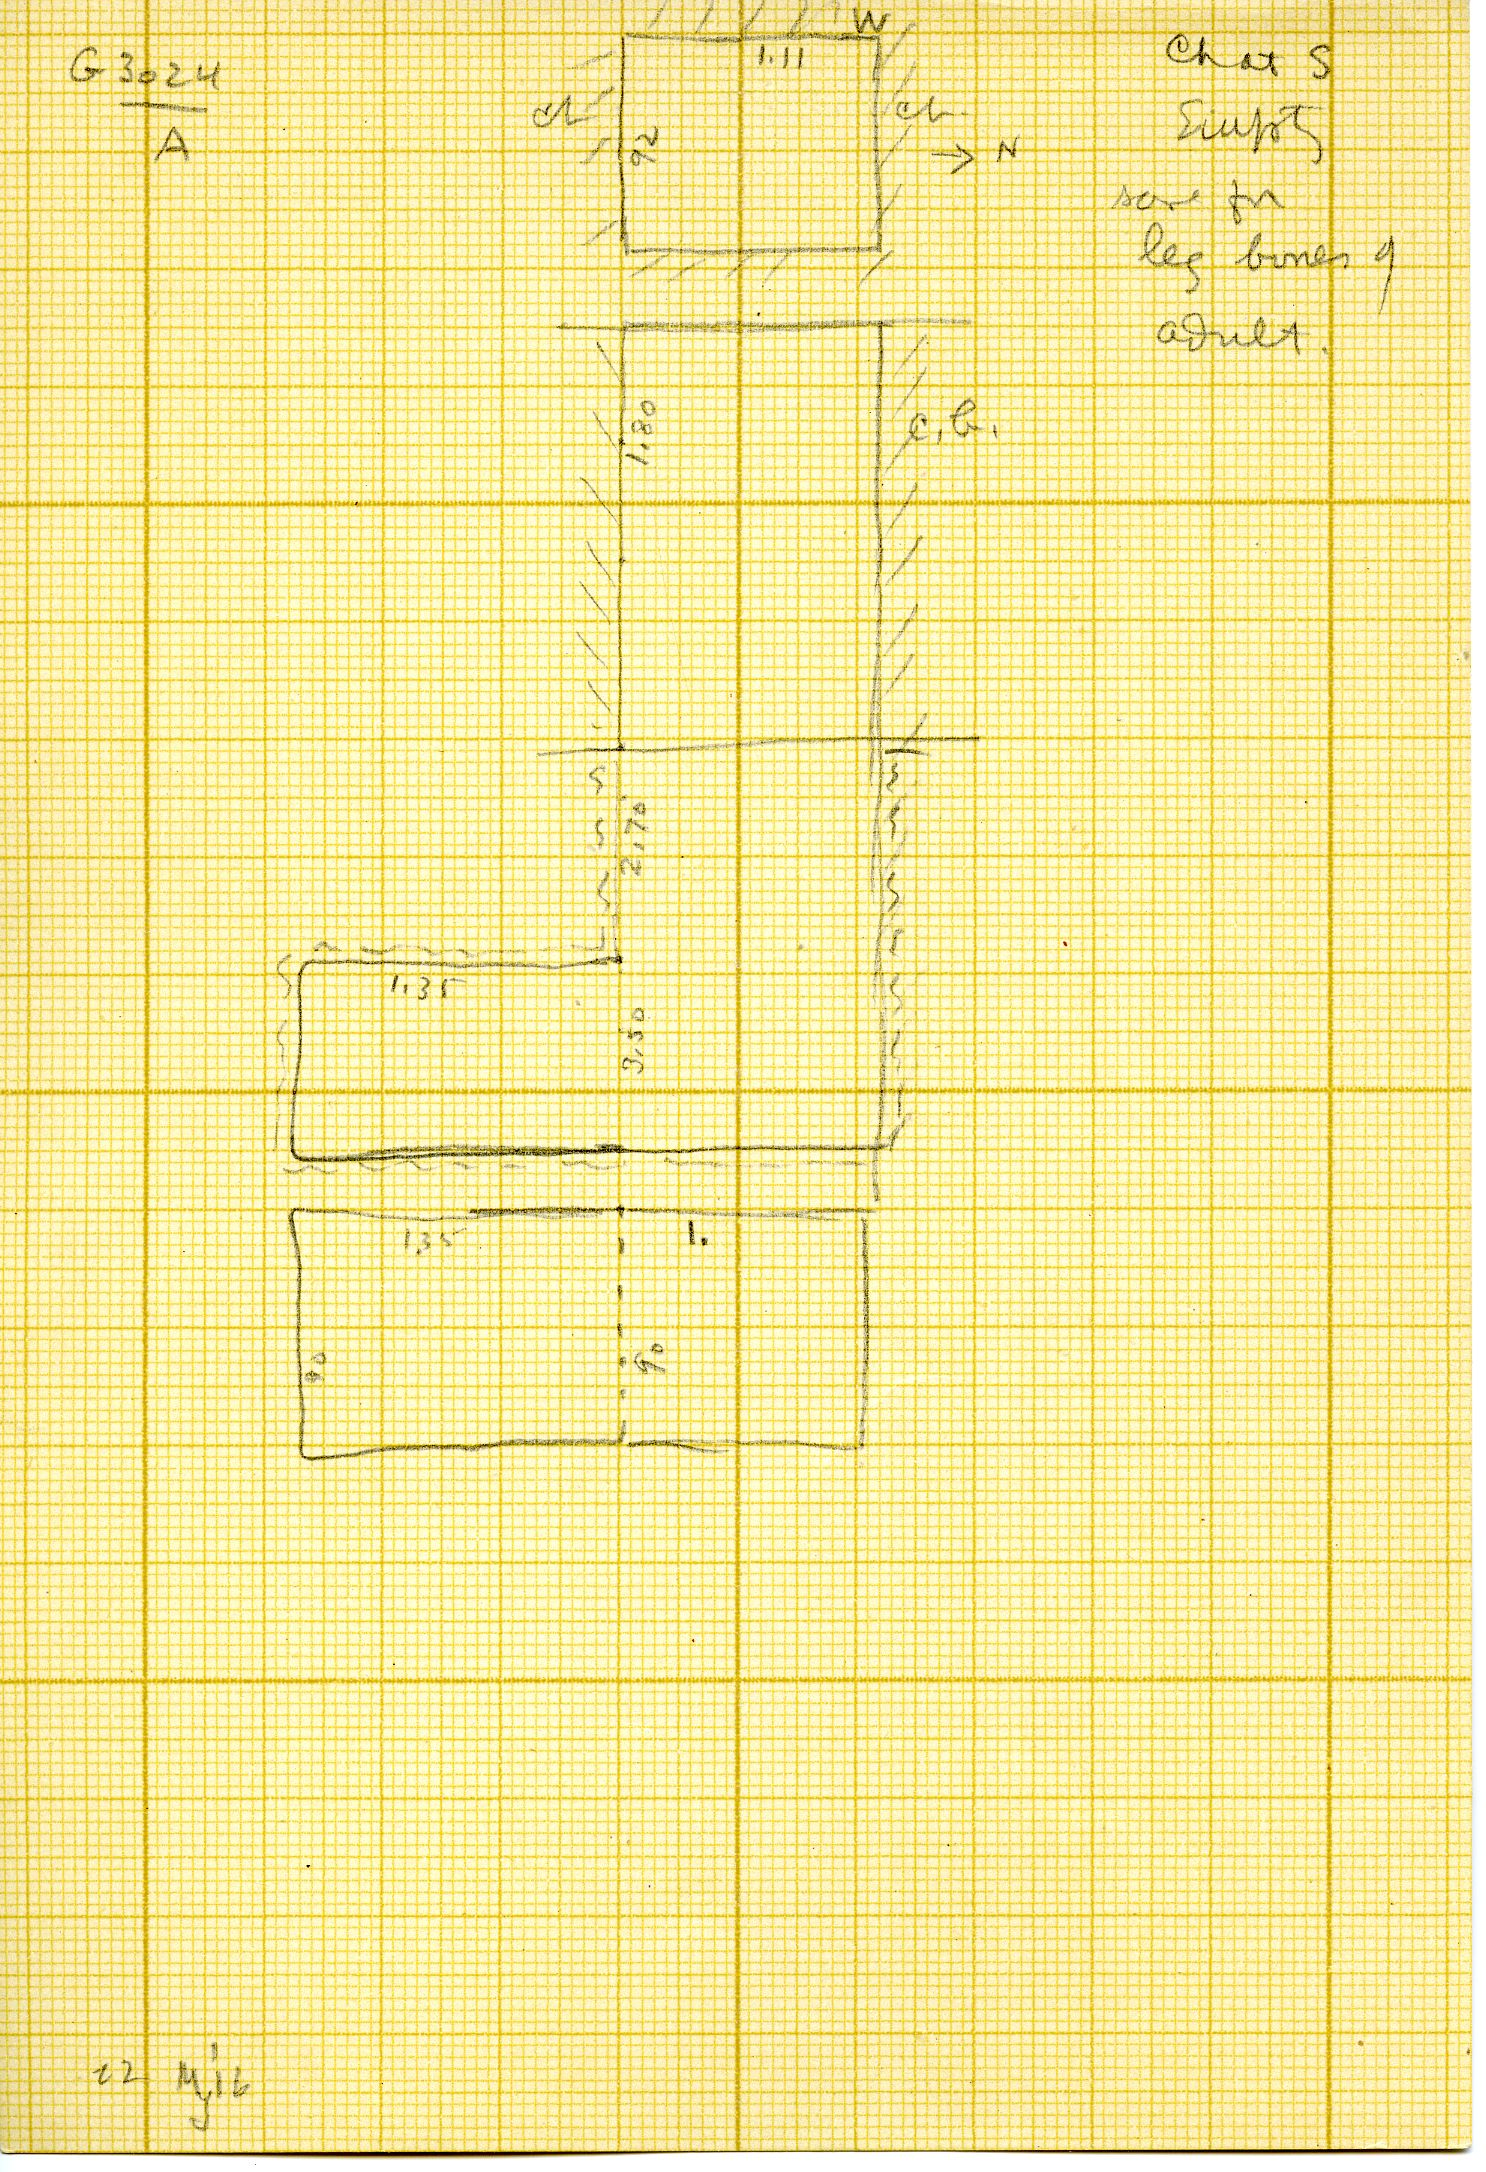 Maps and plans: G 3024, Shaft A